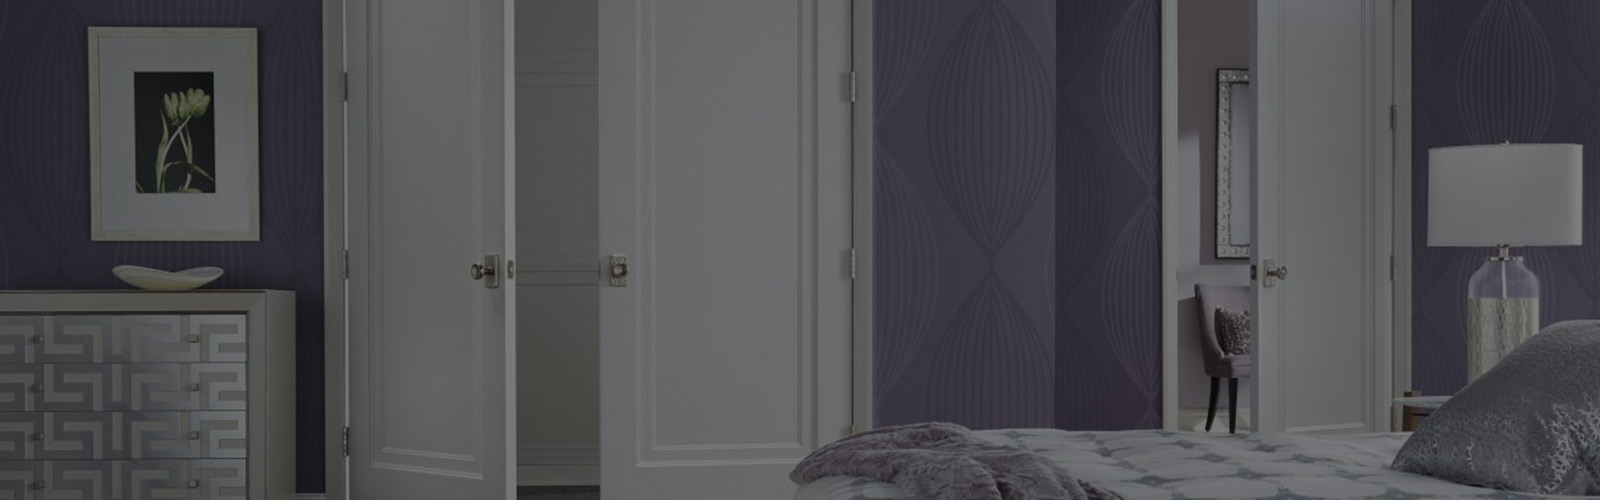 Interior-Doors-Header